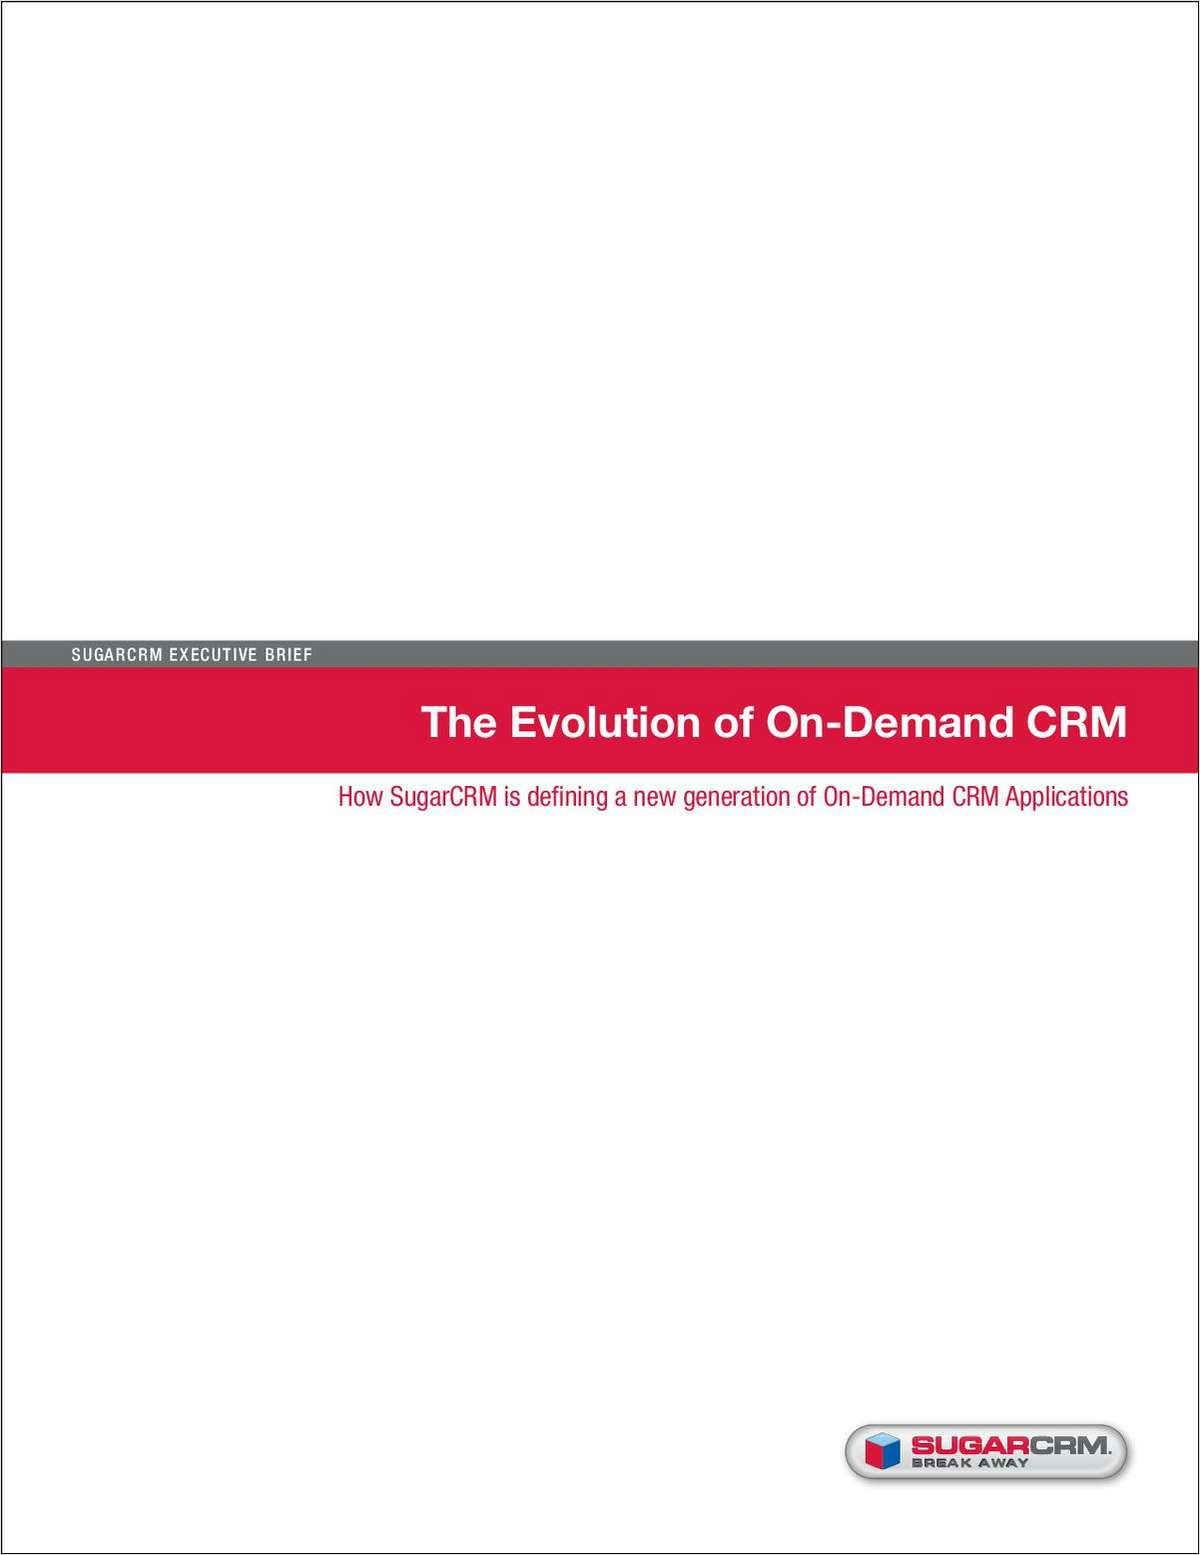 The Evolution of On-Demand CRM - How SugarCRM is defining a new generation of On-Demand CRM Applications